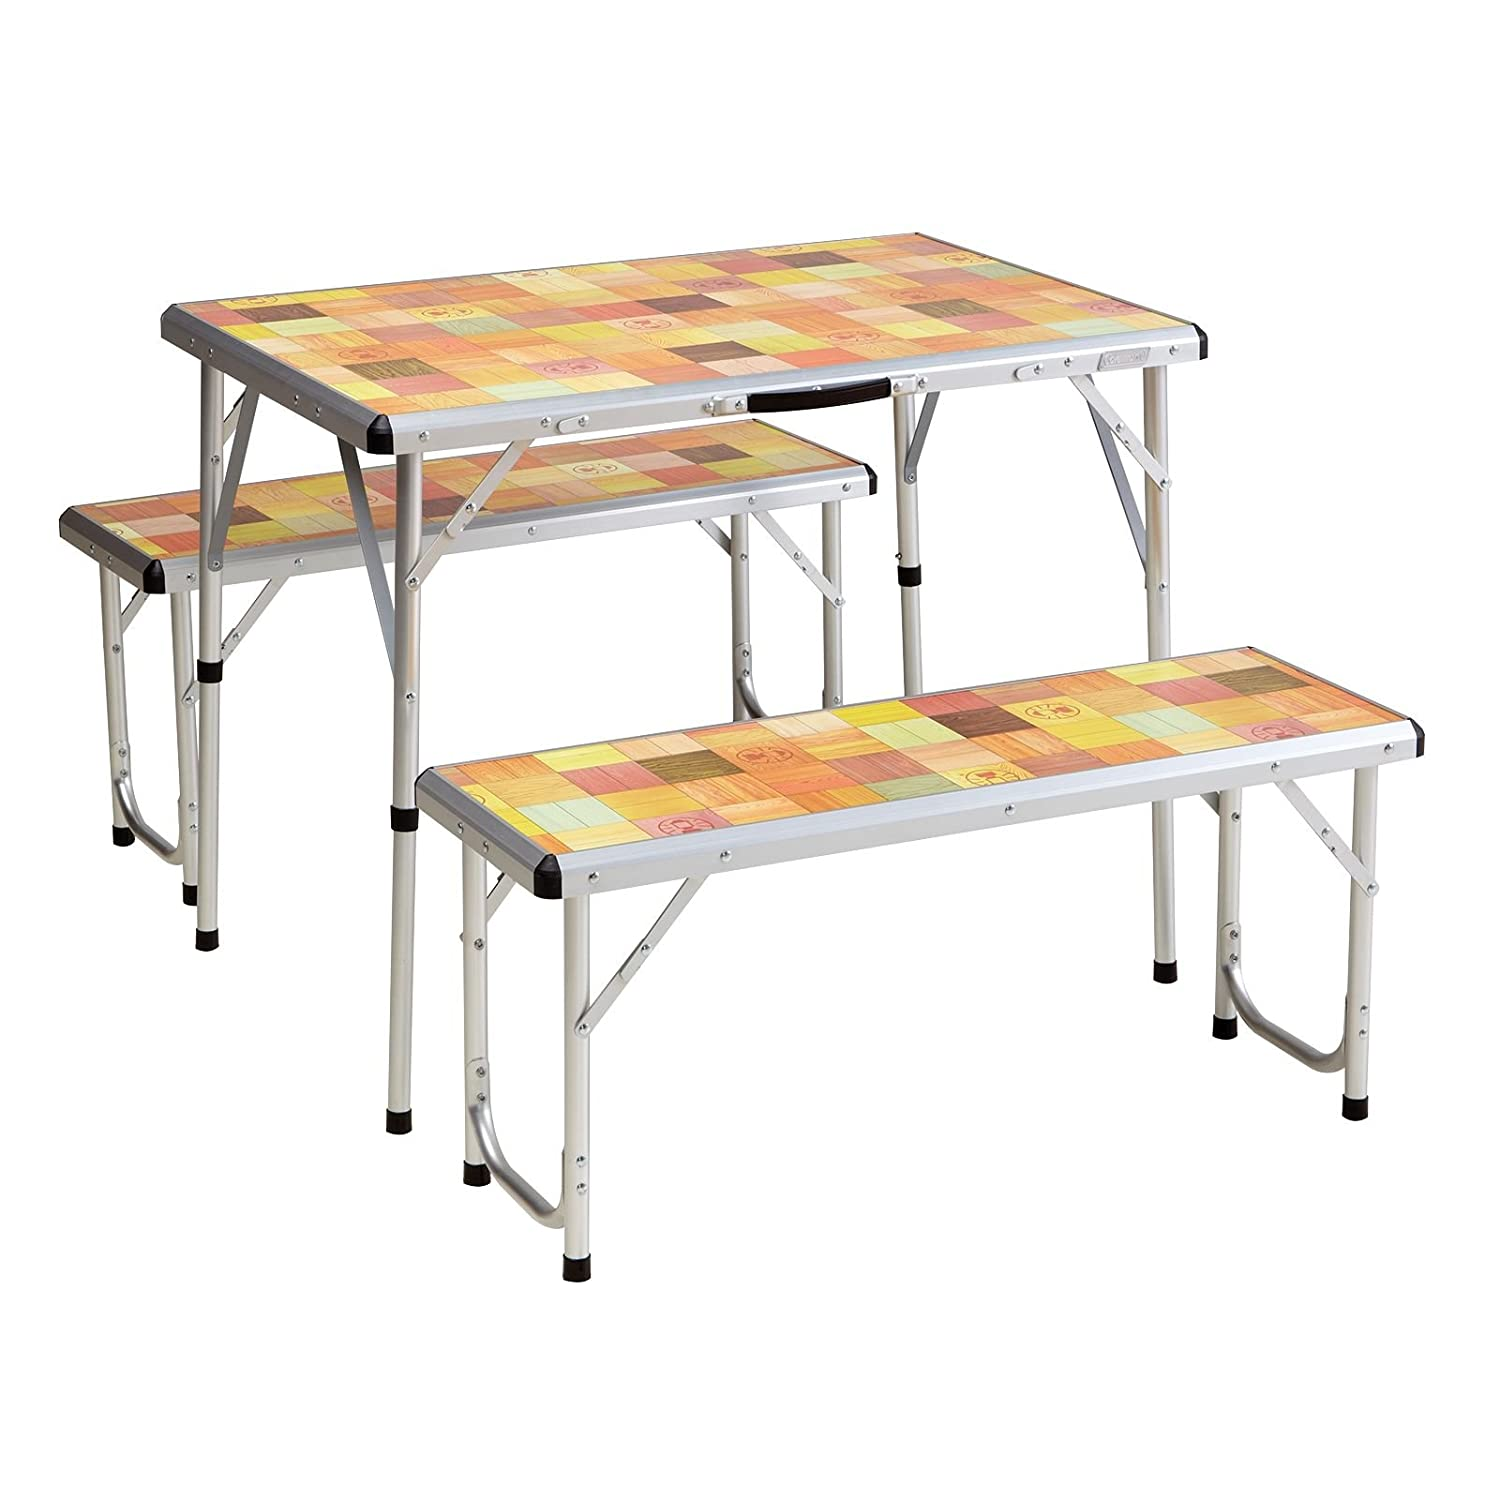 folding table living file outsunny picnic durable in wood portable fir garden outdoor desk bench